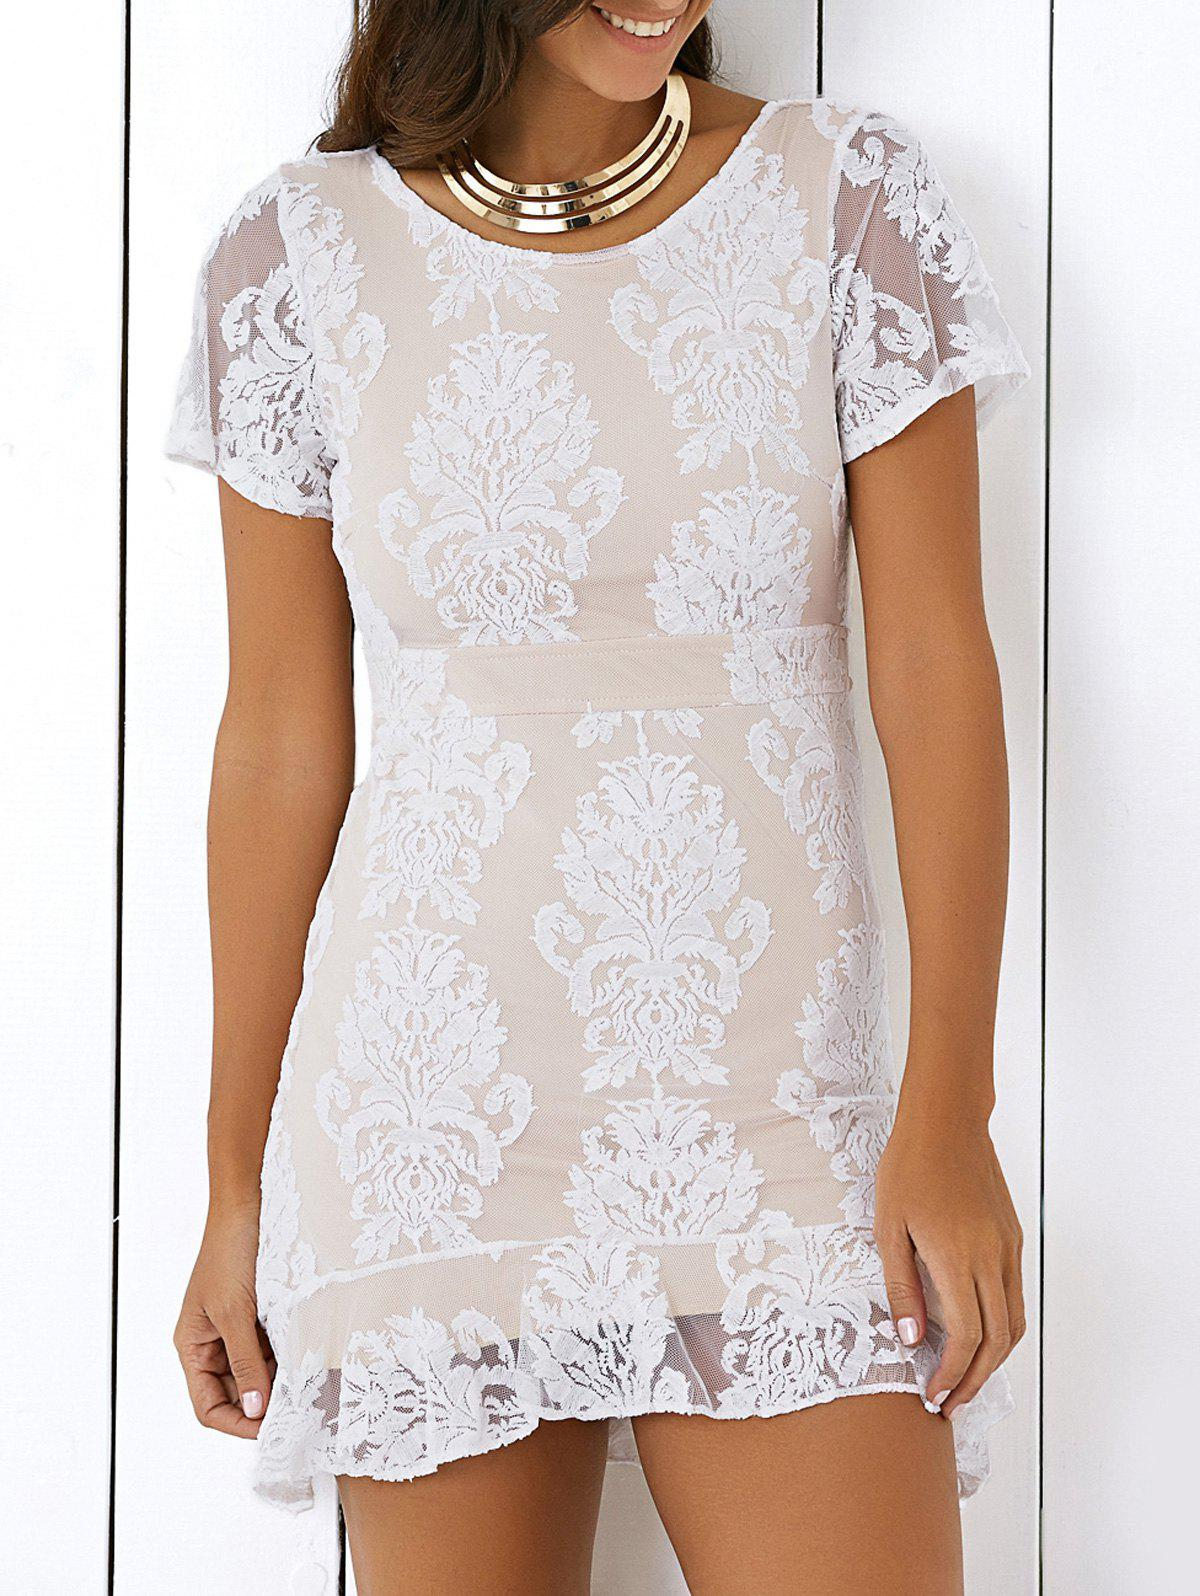 Alluring Women's Open Back Ruffled Lace Dress - OFF WHITE ONE SIZE